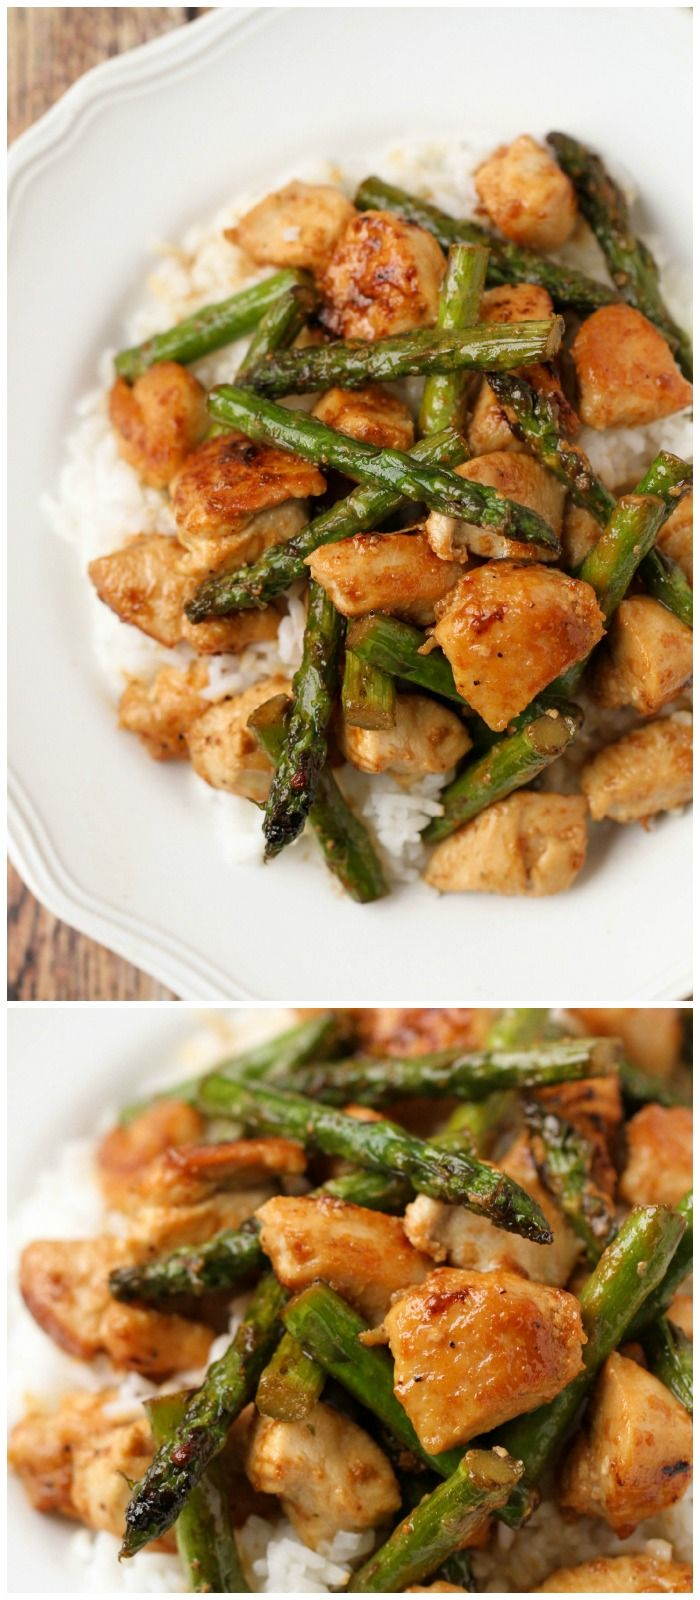 Lemon Chicken And Asparagus Stir Fry Recipe Out Of